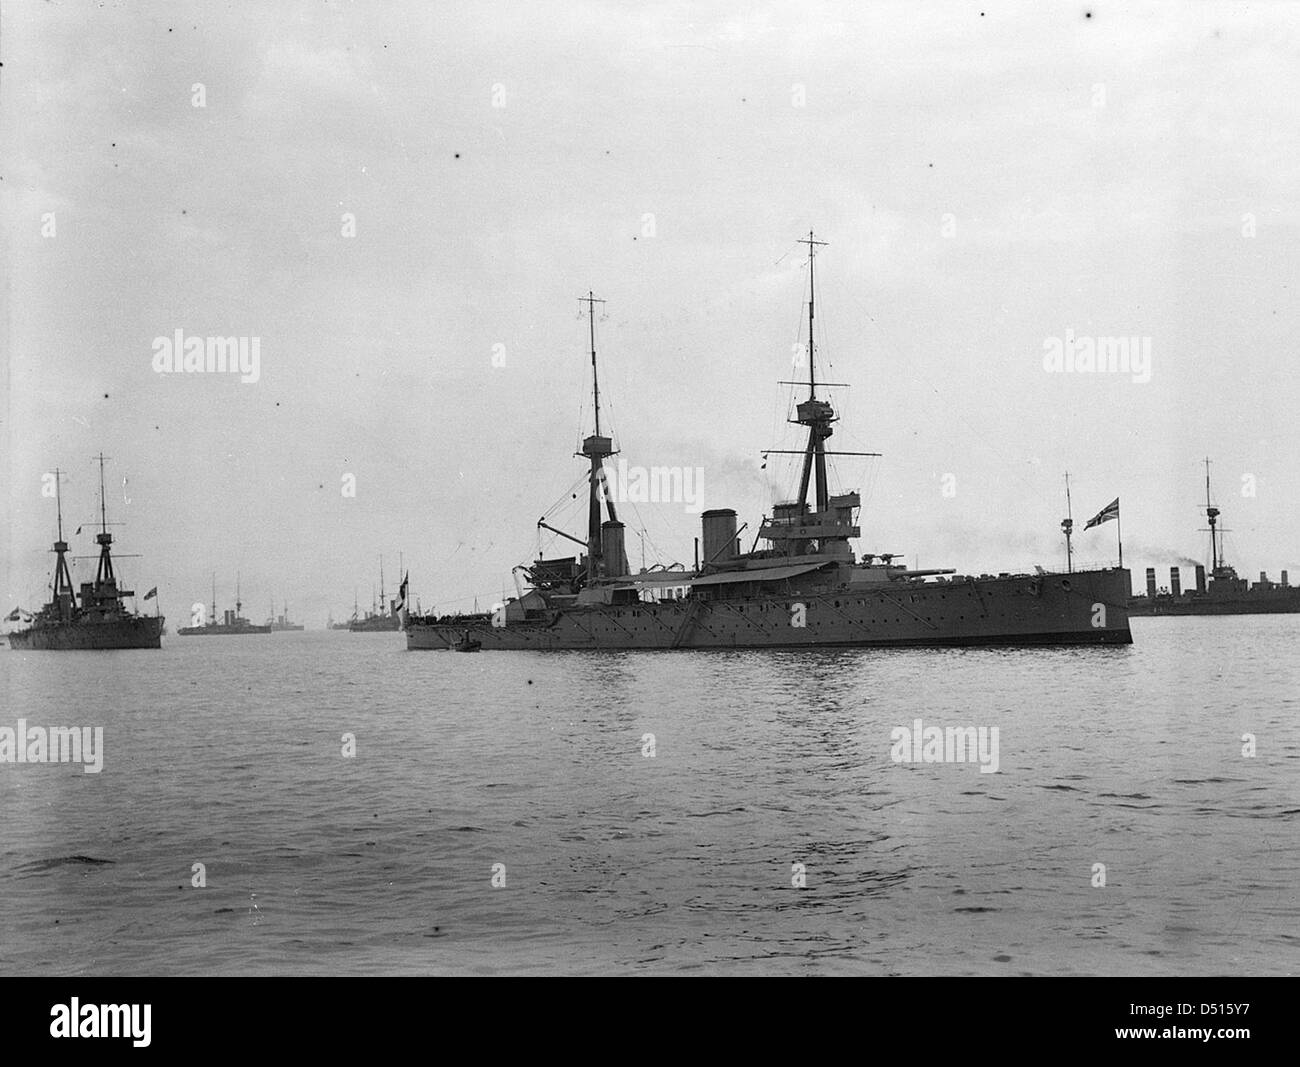 HMS 'Inflexible' anchored at Spithead for the Naval Review - Stock Image